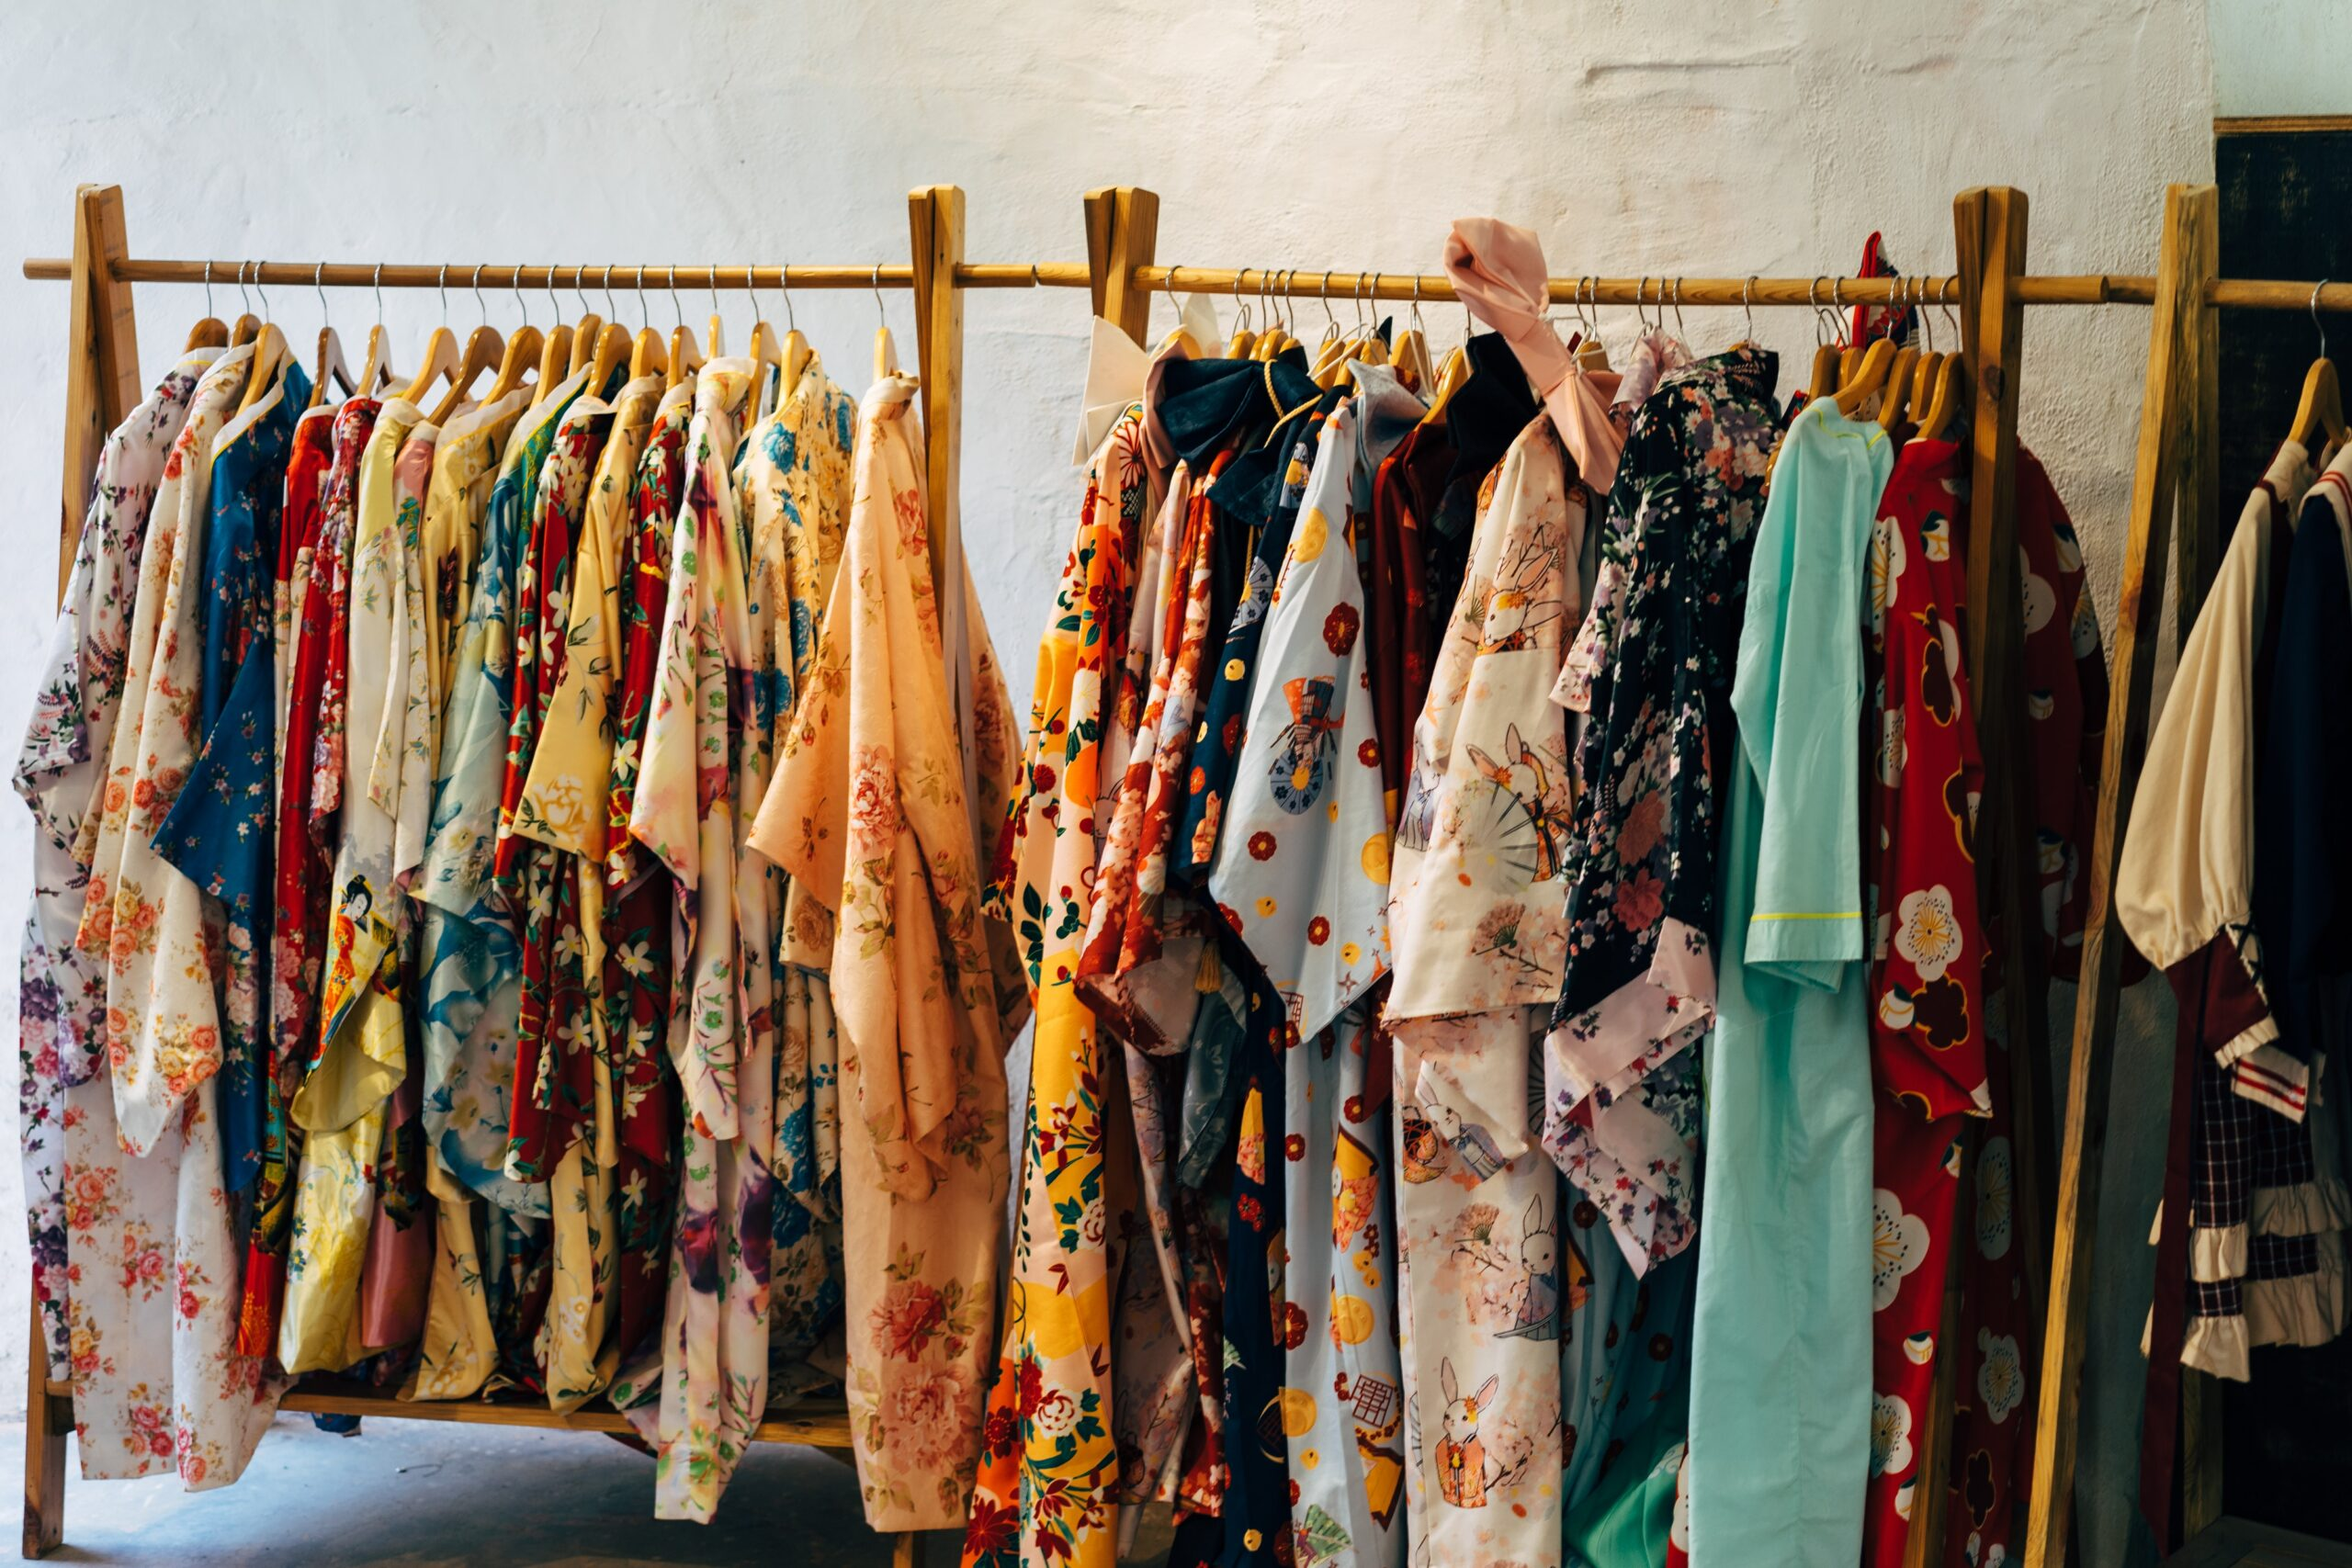 Resale And Reflaunt: A Tale Of Time And Fashion